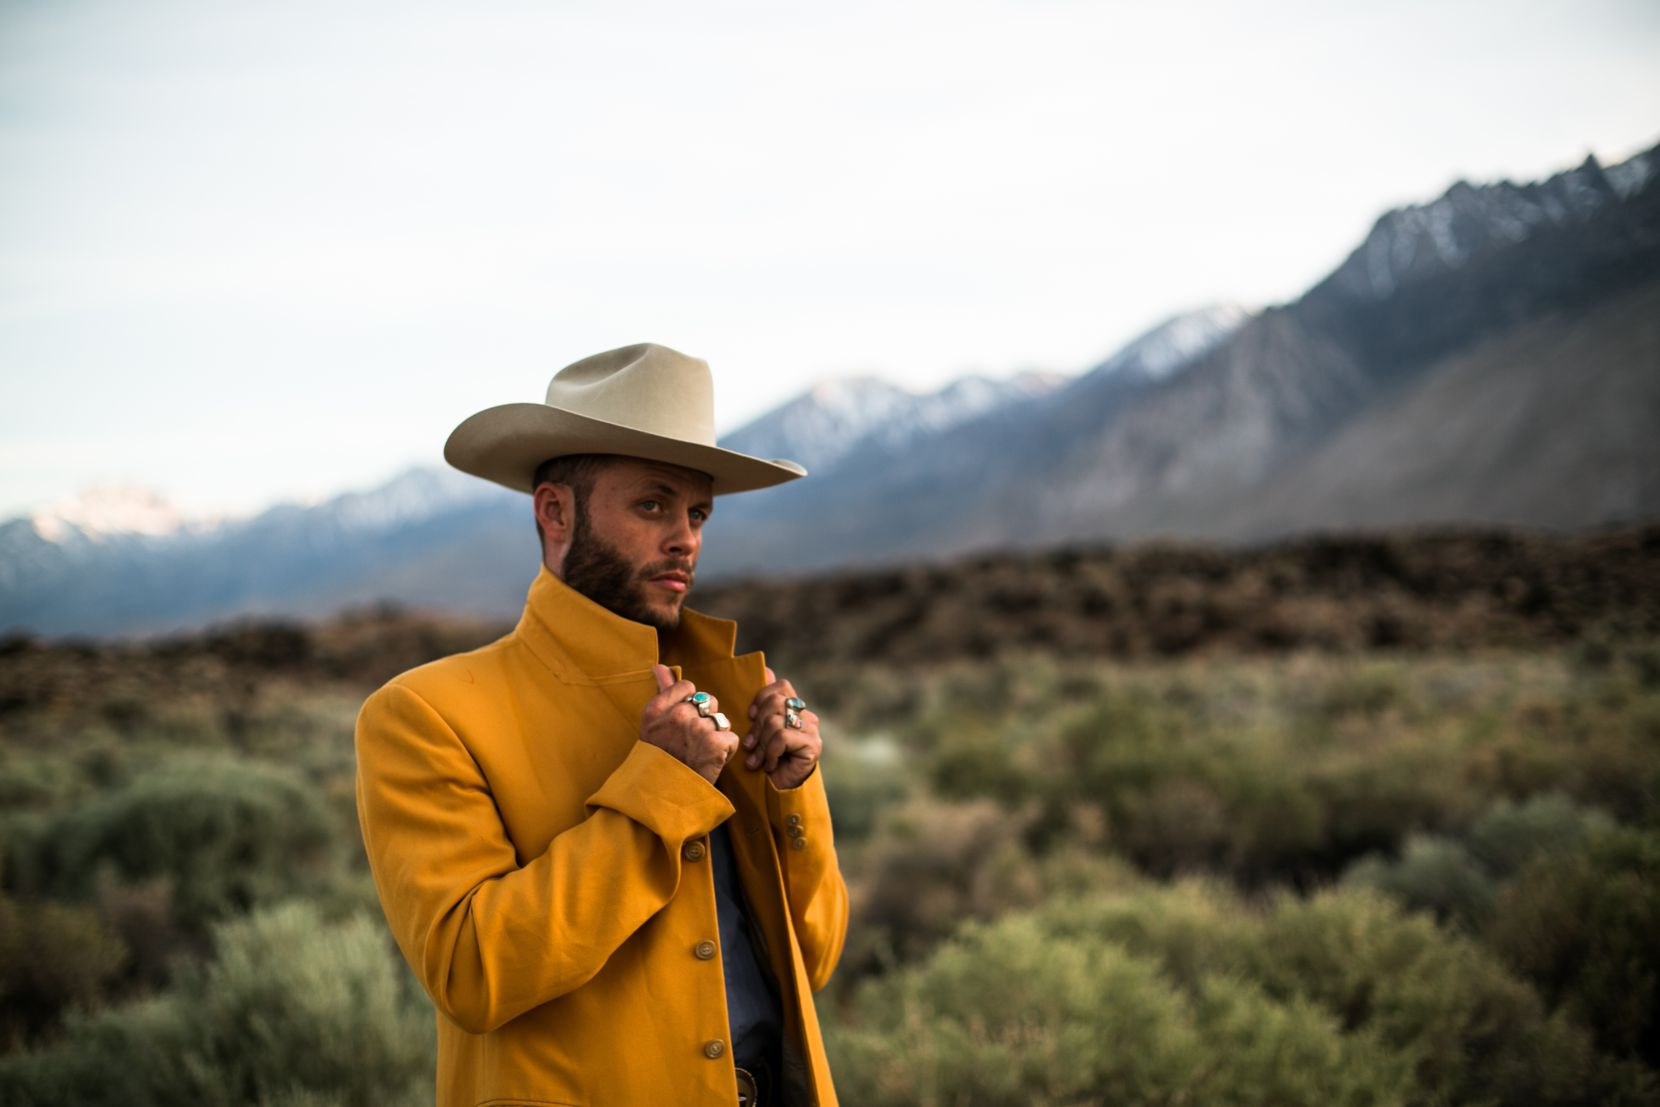 "Singer Charley Crockett has been called a stylistic chameleon, and his new album illustrates his eclectic approach within the realm of a classic country sound. ""I feel like maybe we landed in a world somewhere between Lee Hazlewood and Bill Withers,"" he says."